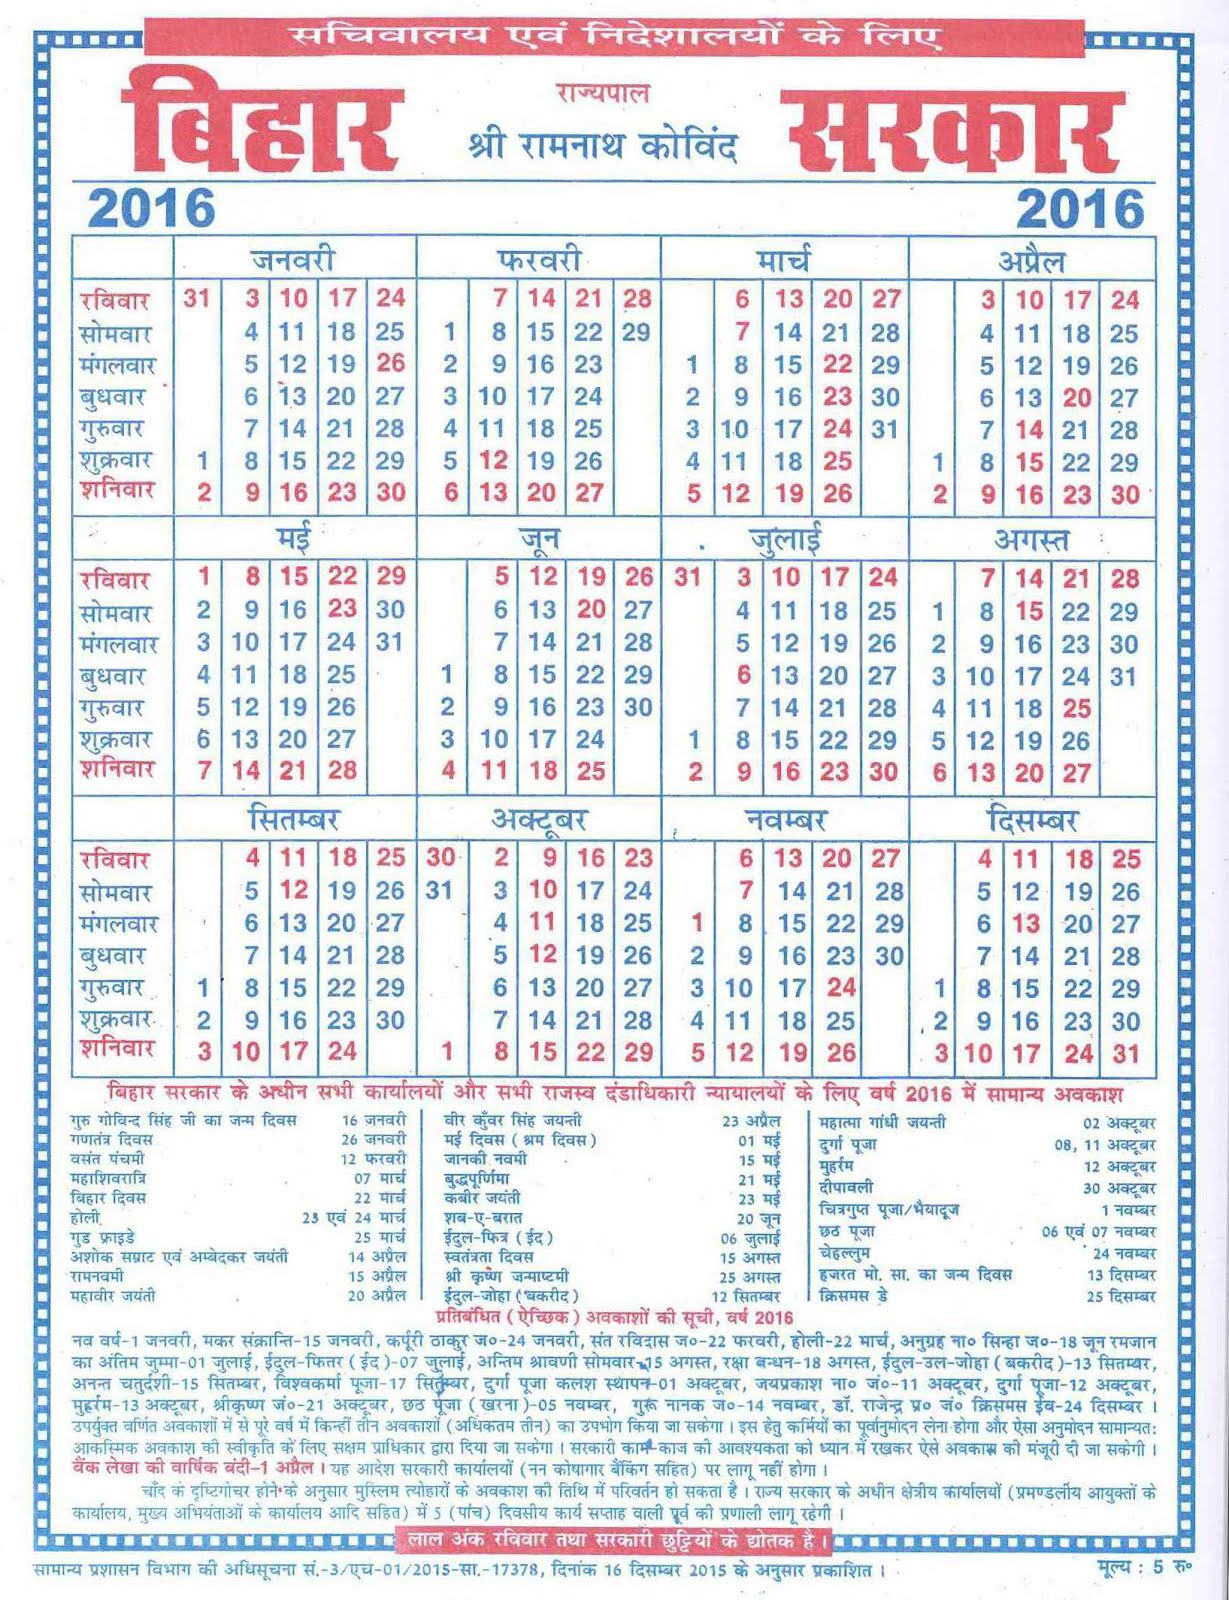 Bihar Government Calendar 2016 Download intended for Bihar Sarkar Clender